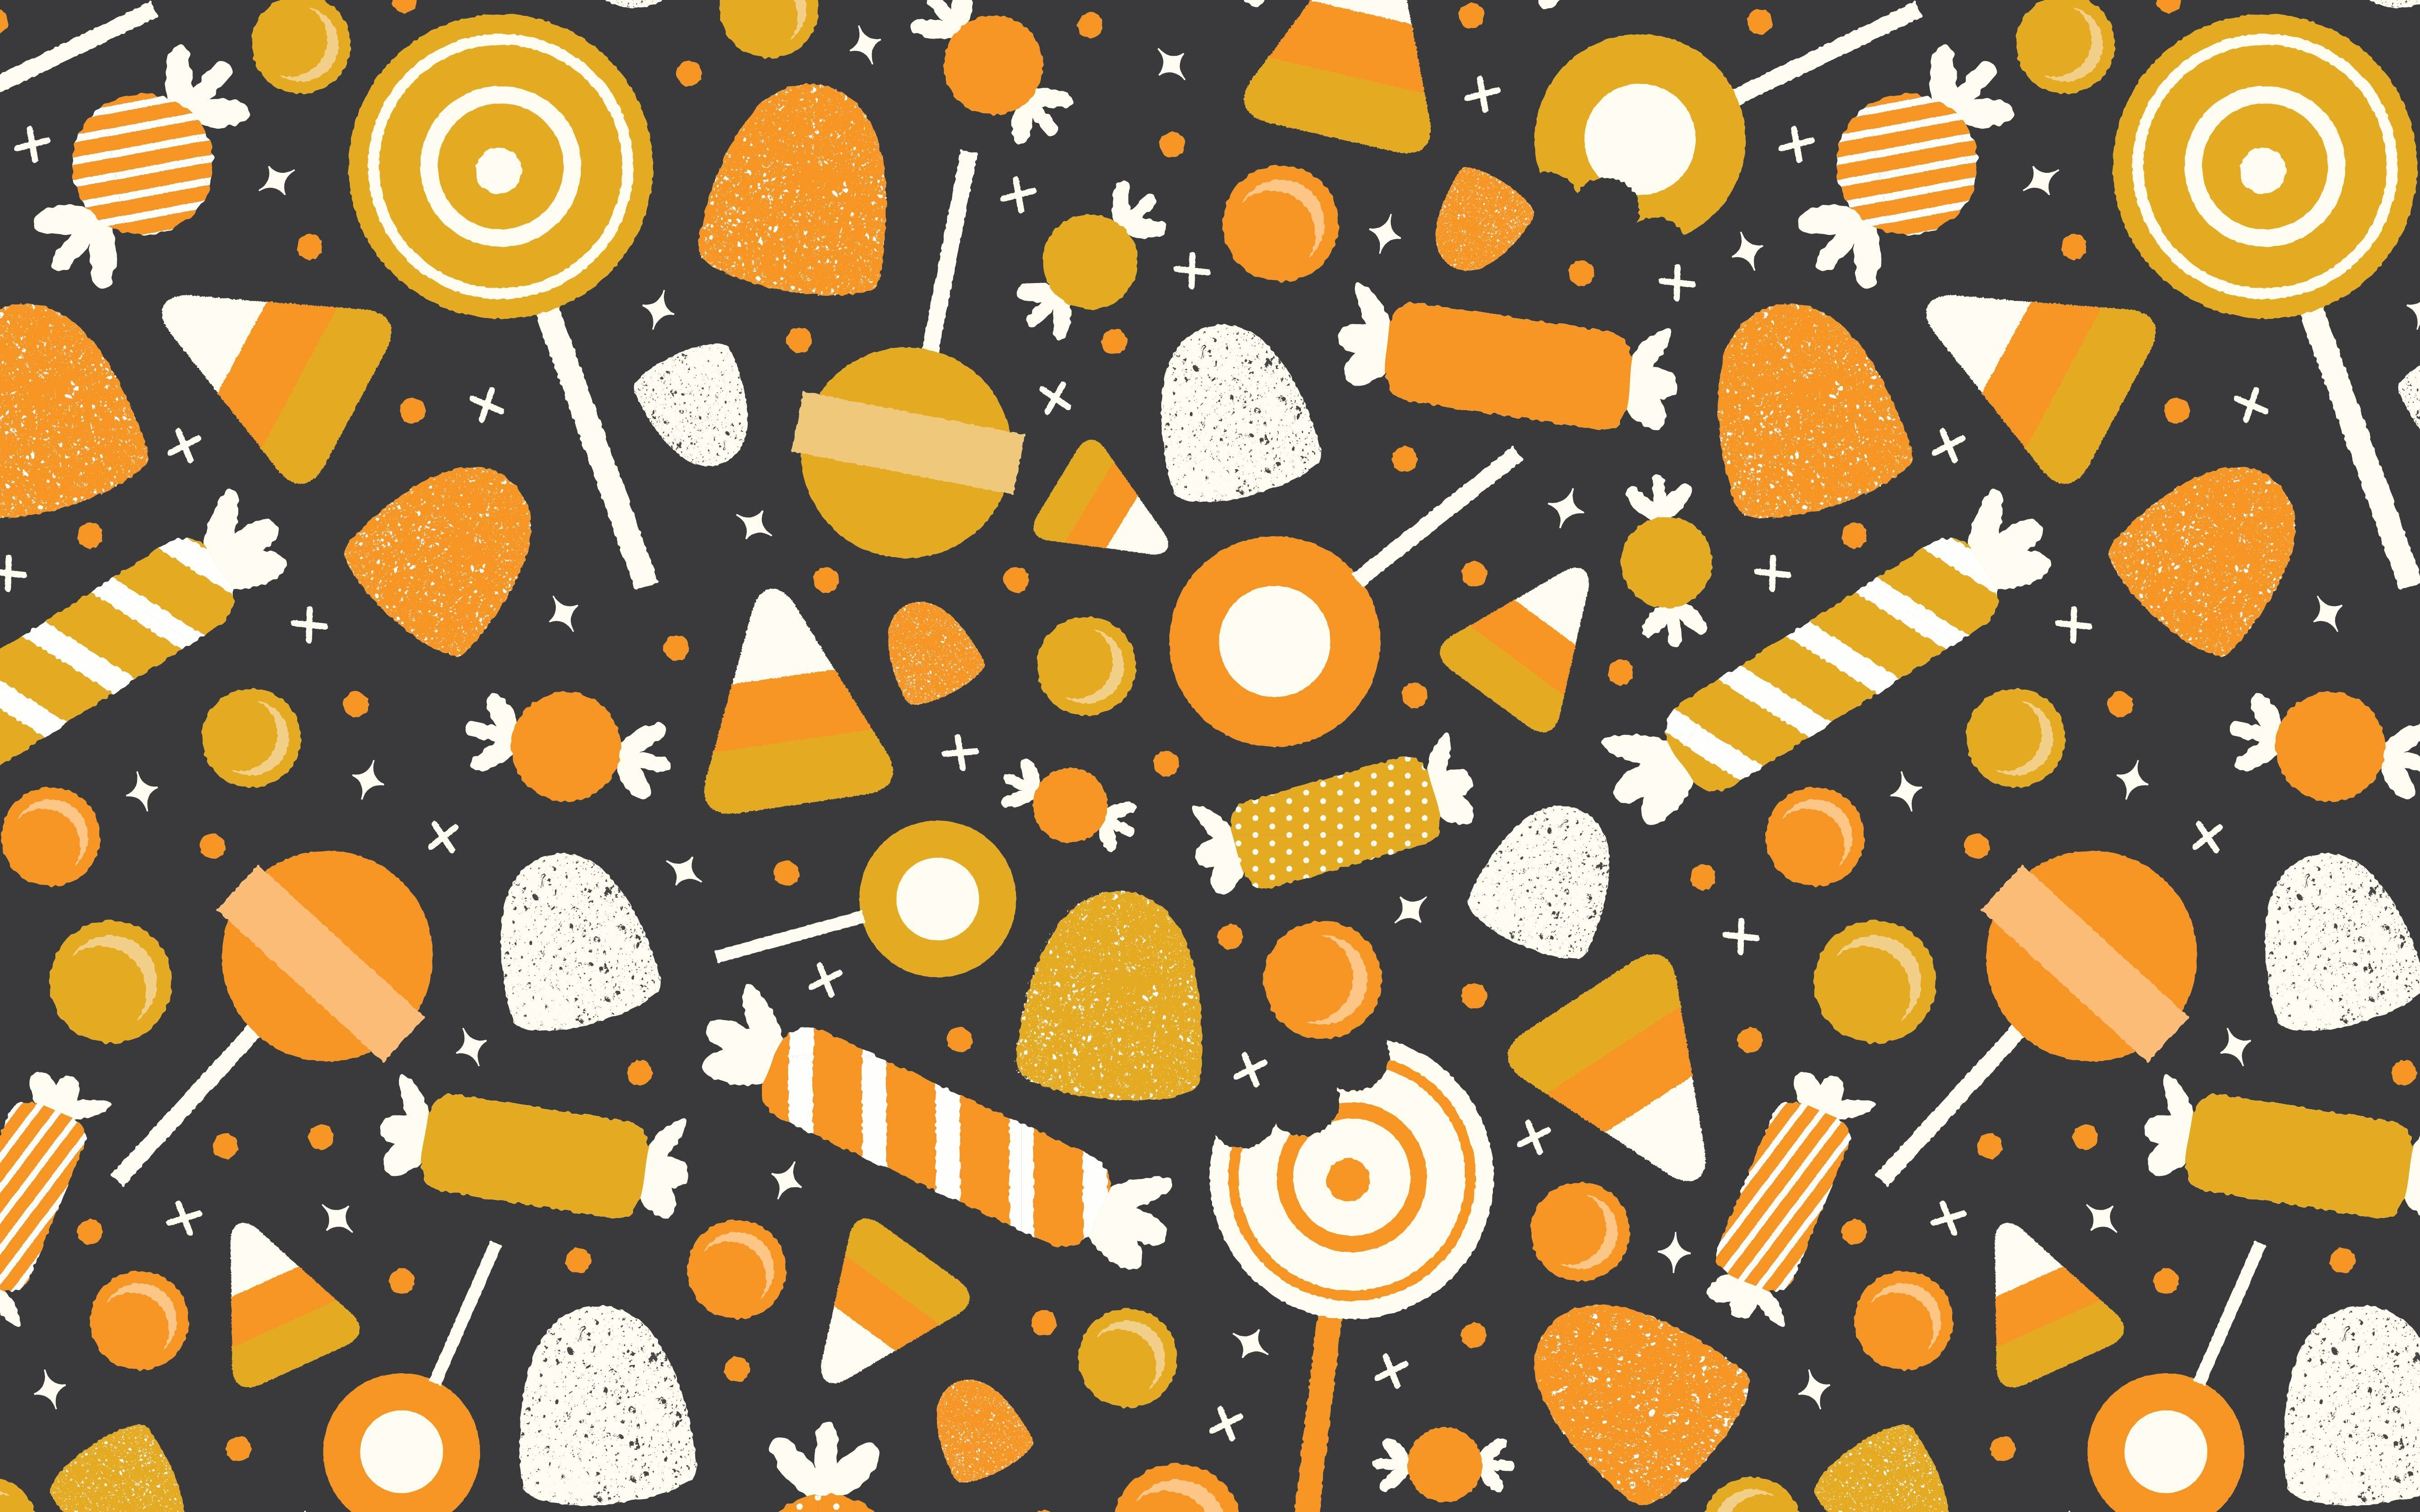 5333x3333 Candy Corn Wallpapers